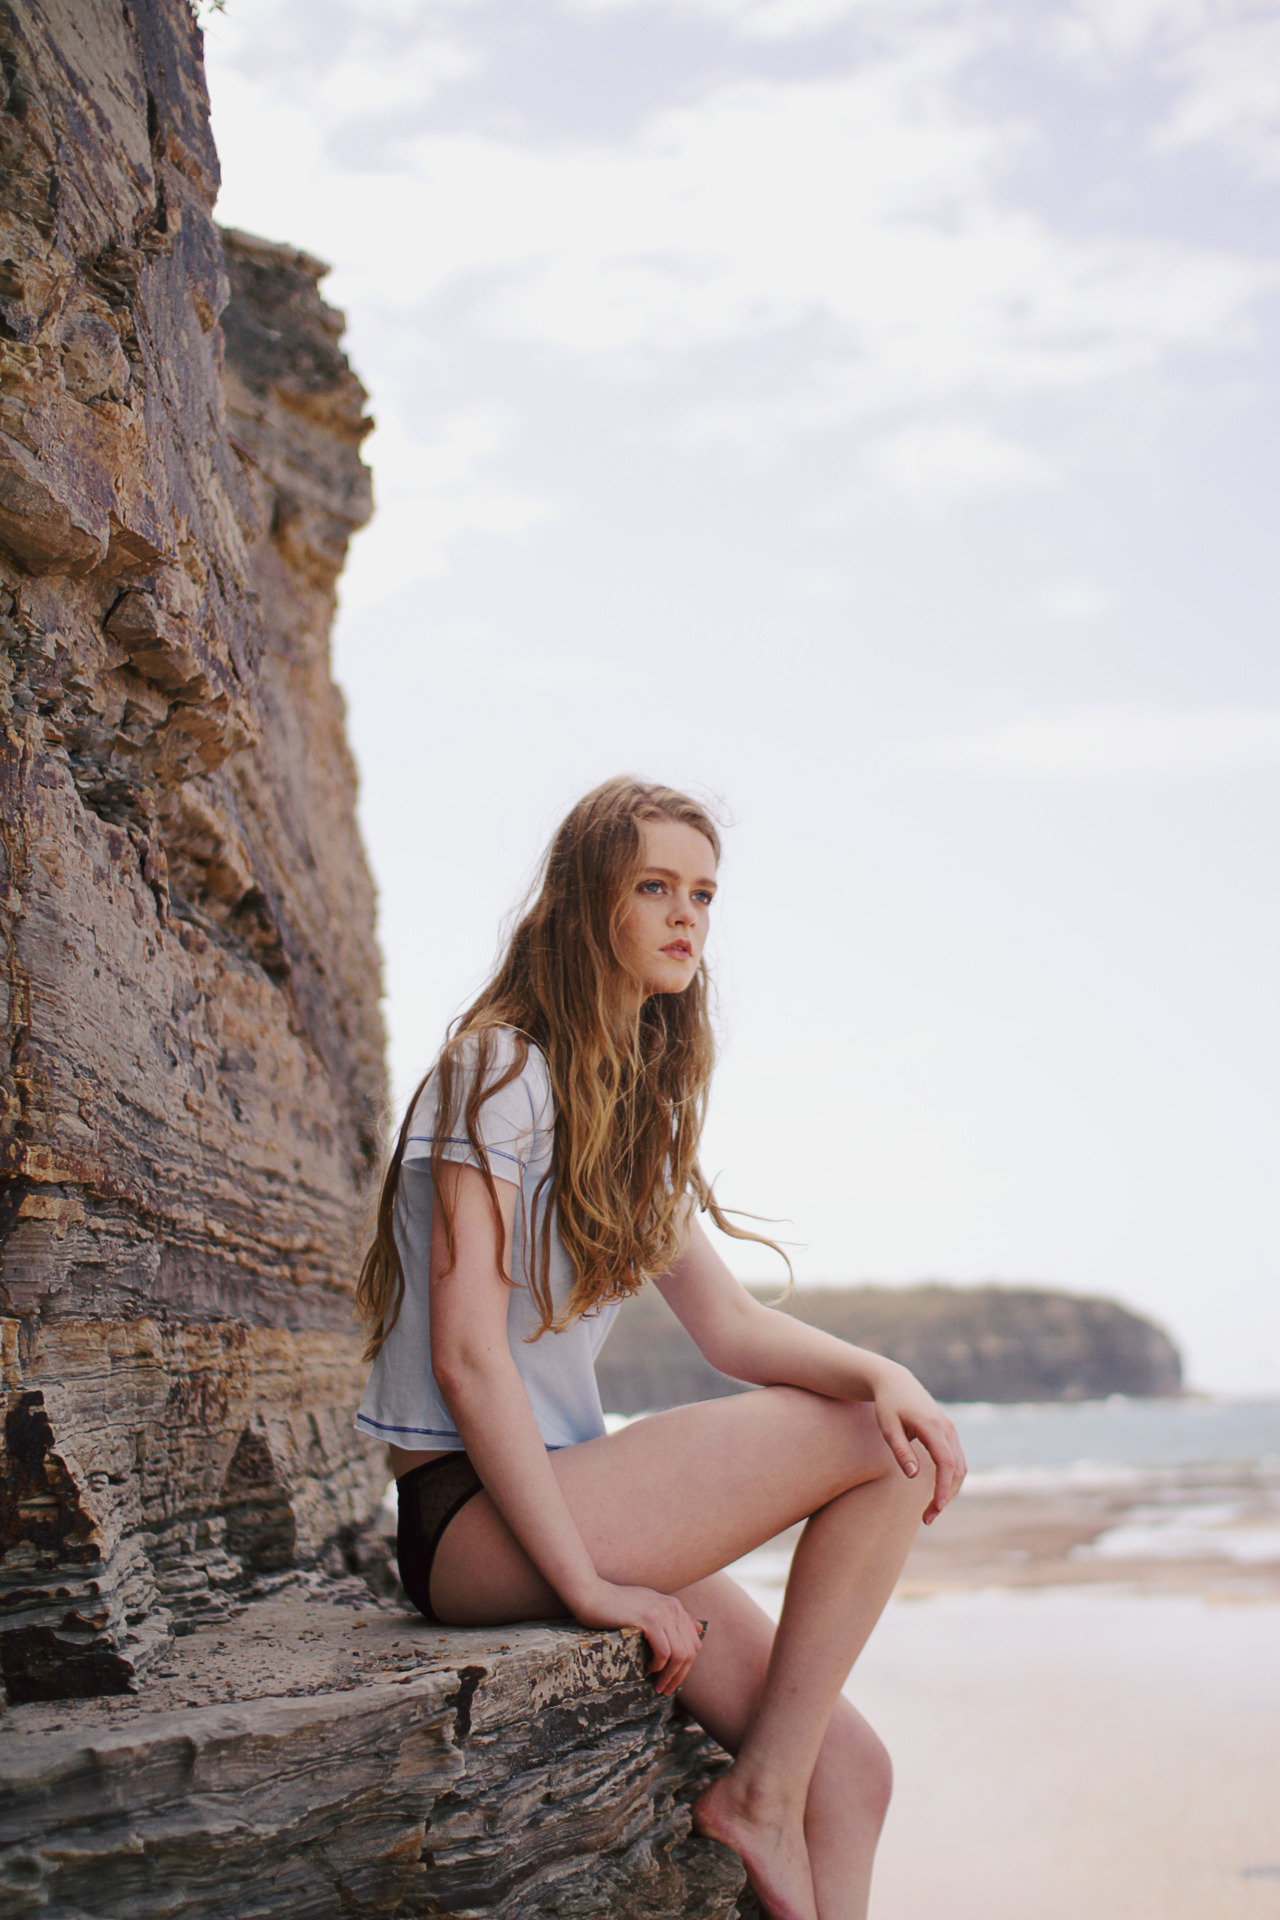 Had a swell time shooting at Narrabeen today. Here's a sneak peek.